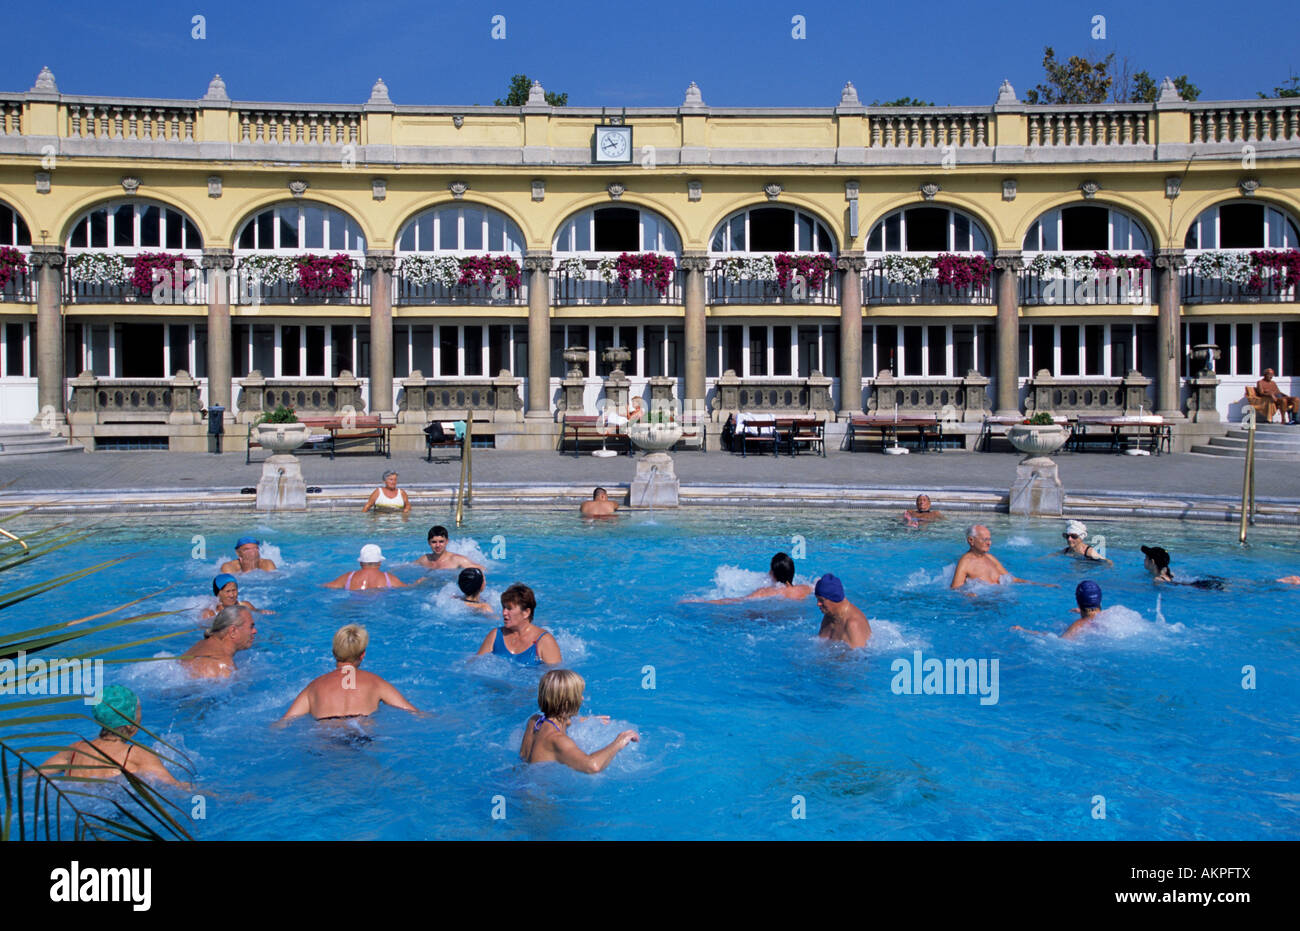 Cash Pool Oberursel Hungary In 1915 Stock Photos Hungary In 1915 Stock Images Alamy